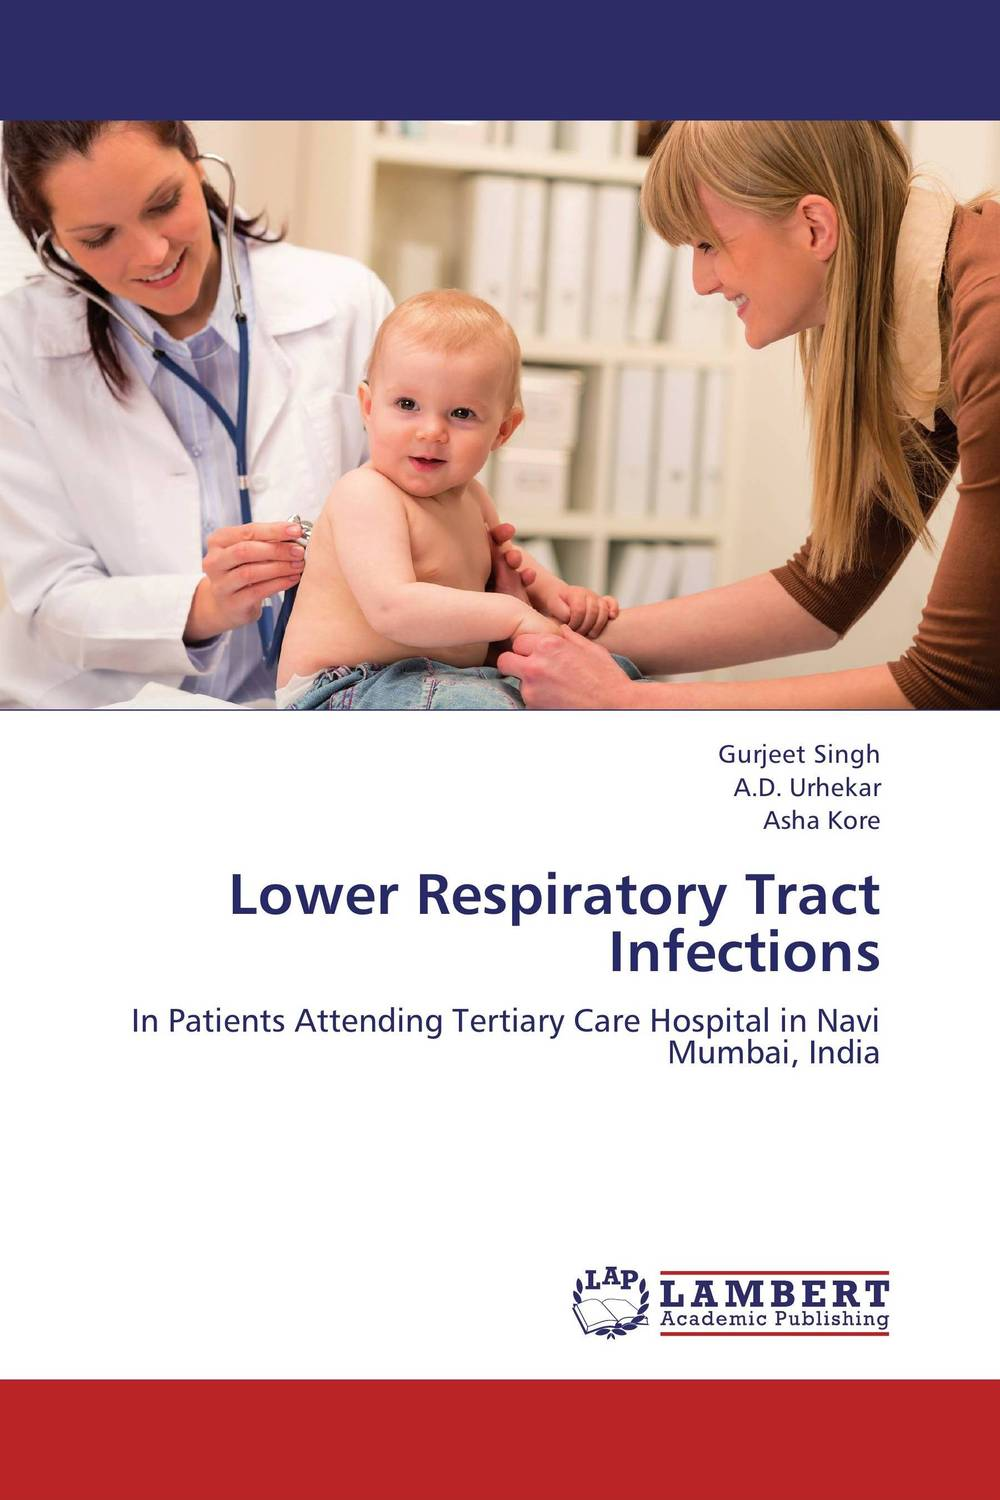 Lower Respiratory Tract Infections shyam kumar mishra antimicrobial drug resistance in lower respiratory tract infection